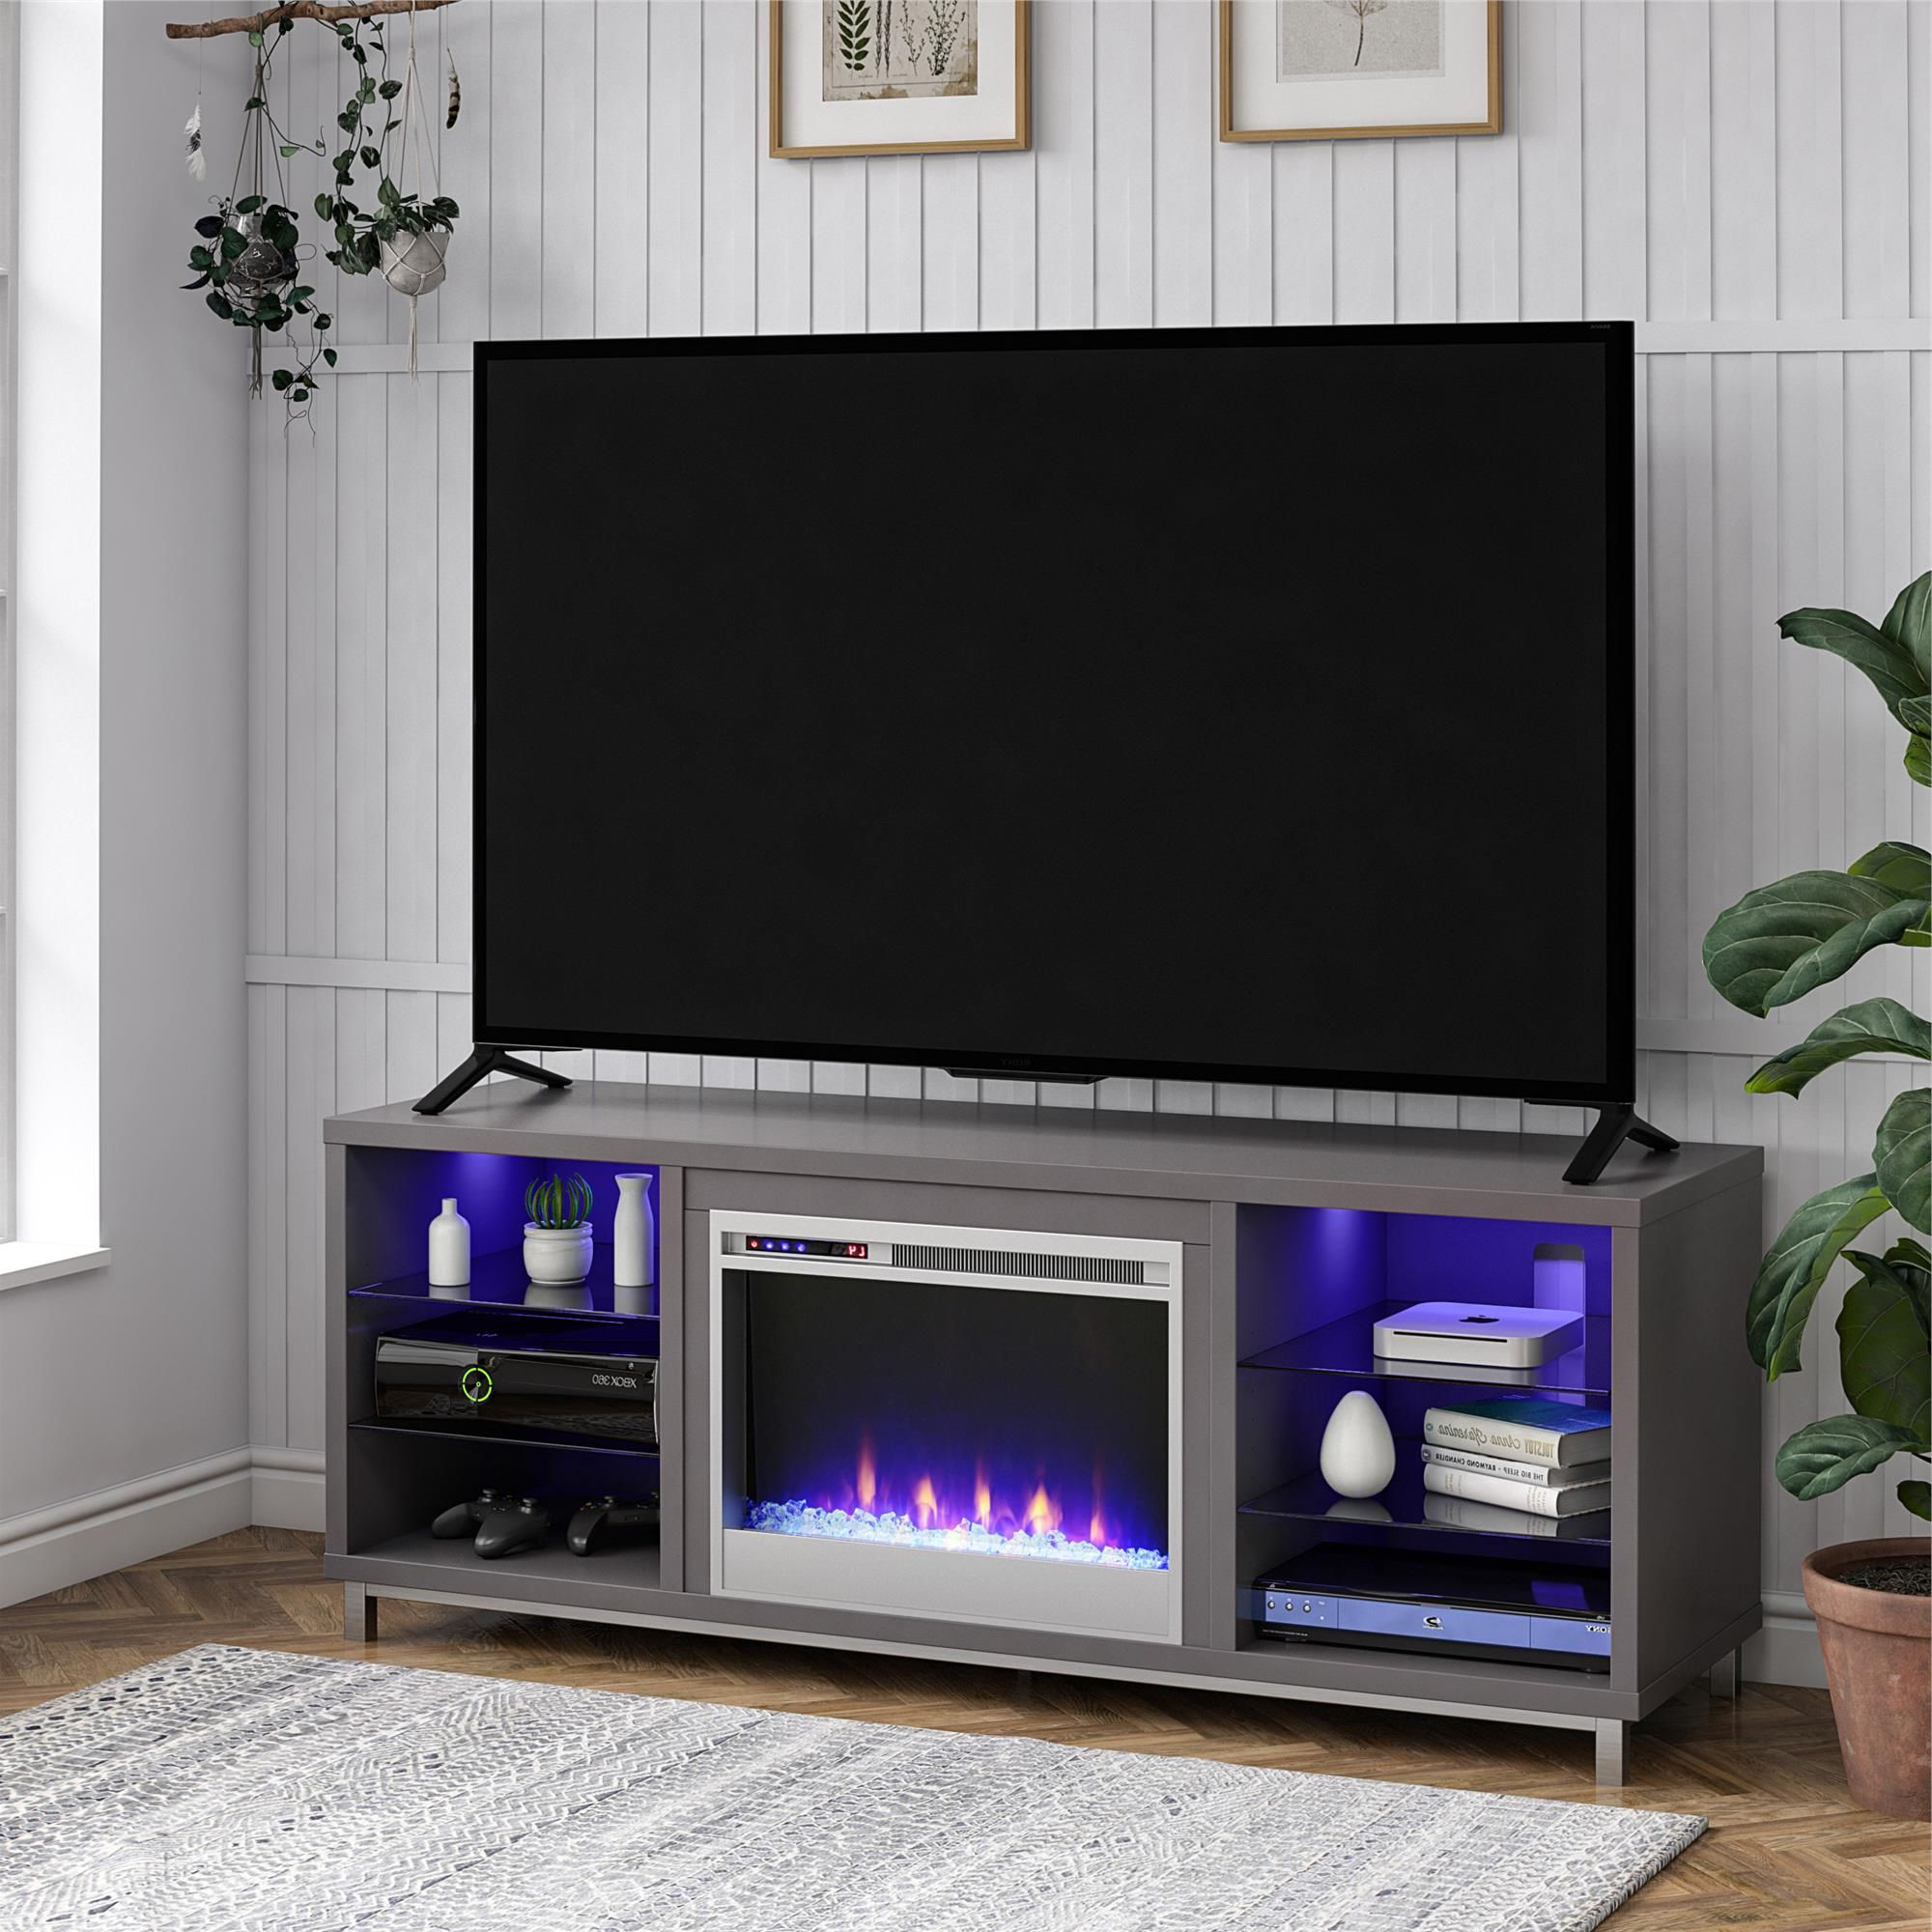 """Ameriwood Lumina Fireplace Tv Stand For Tvs Up To 70"""" Wide With Regard To Chicago Tv Stands For Tvs Up To 70"""" With Fireplace Included (View 16 of 20)"""